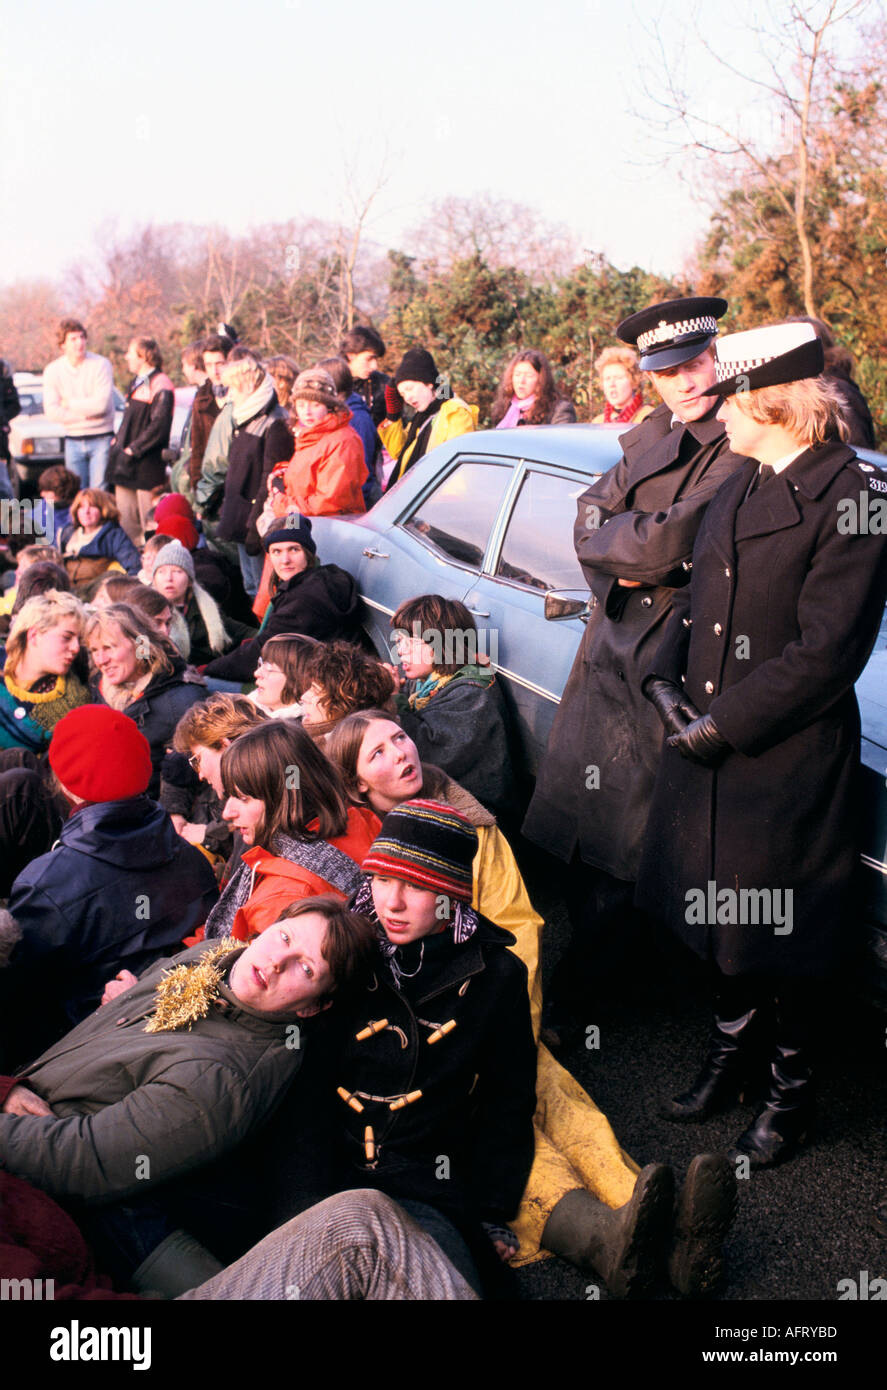 WOMENS PEACE CAMP  BLOCKADE OF AMERICAN USAF  NUCLEAR CRUISE MISSILE AIR BASE AT GREENHAM  COMMON BERKSHIRE ENGLAND. Stock Photo